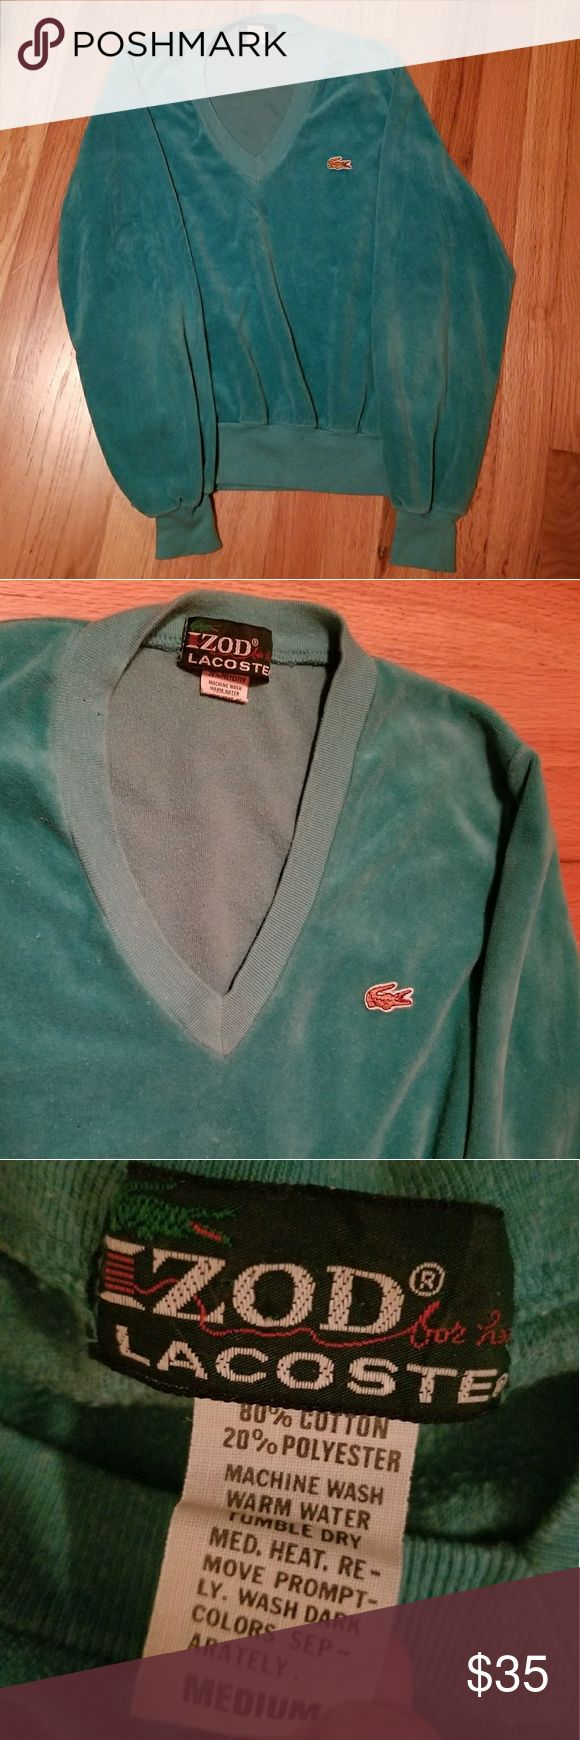 Vintage Lacoste velour cropped sweatshirt Be comfy, cozy, and stylish in this cropped turquoise velour sweatshirt from Lacoste.  Slight V neck.   Labeled a medium but fits like a small.   Small signs of wear along neckline due to being vintage. Lacoste Sweaters V-Necks